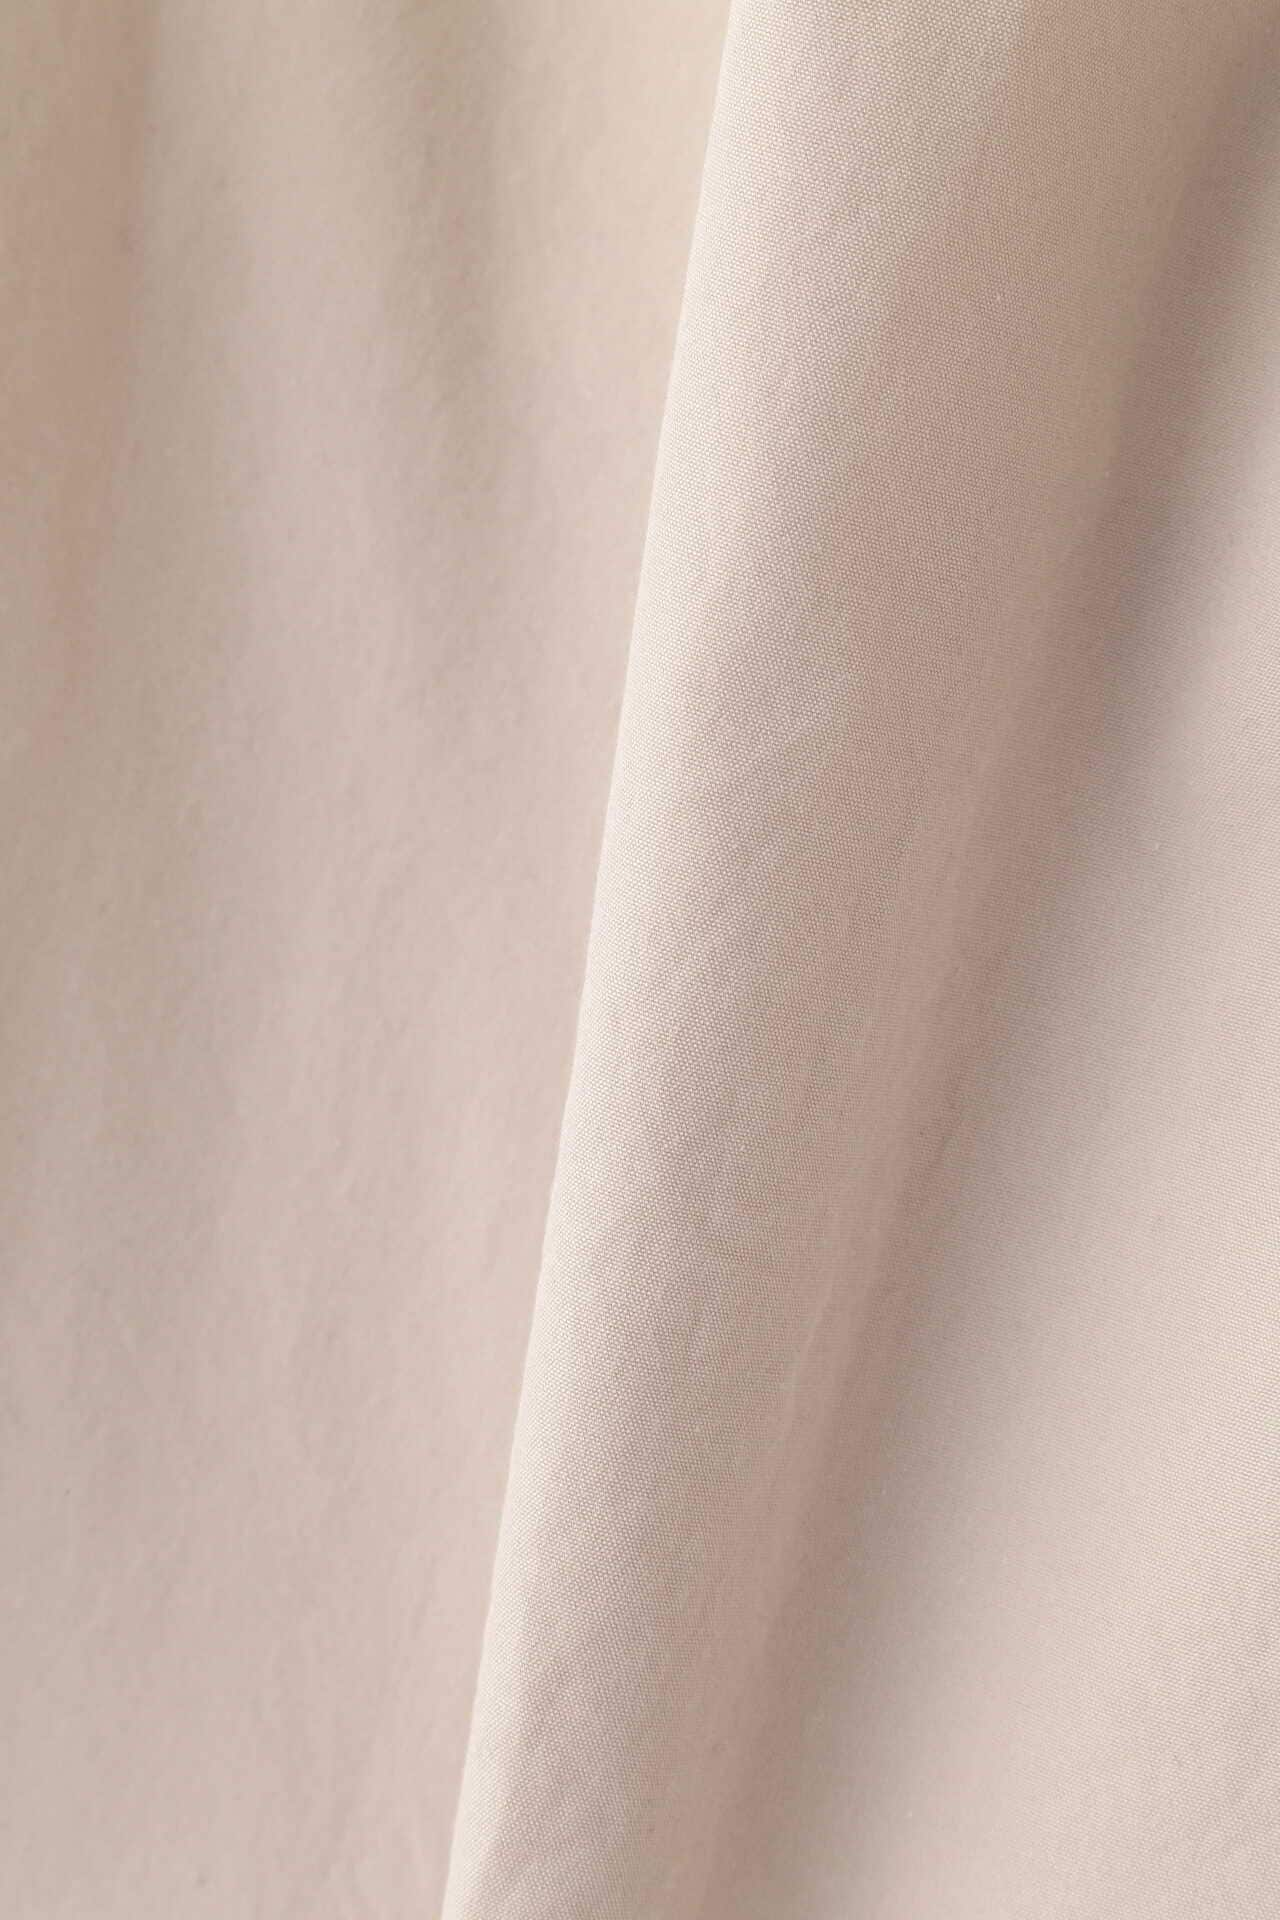 WASHED DENSE COTTON  POPLIN10